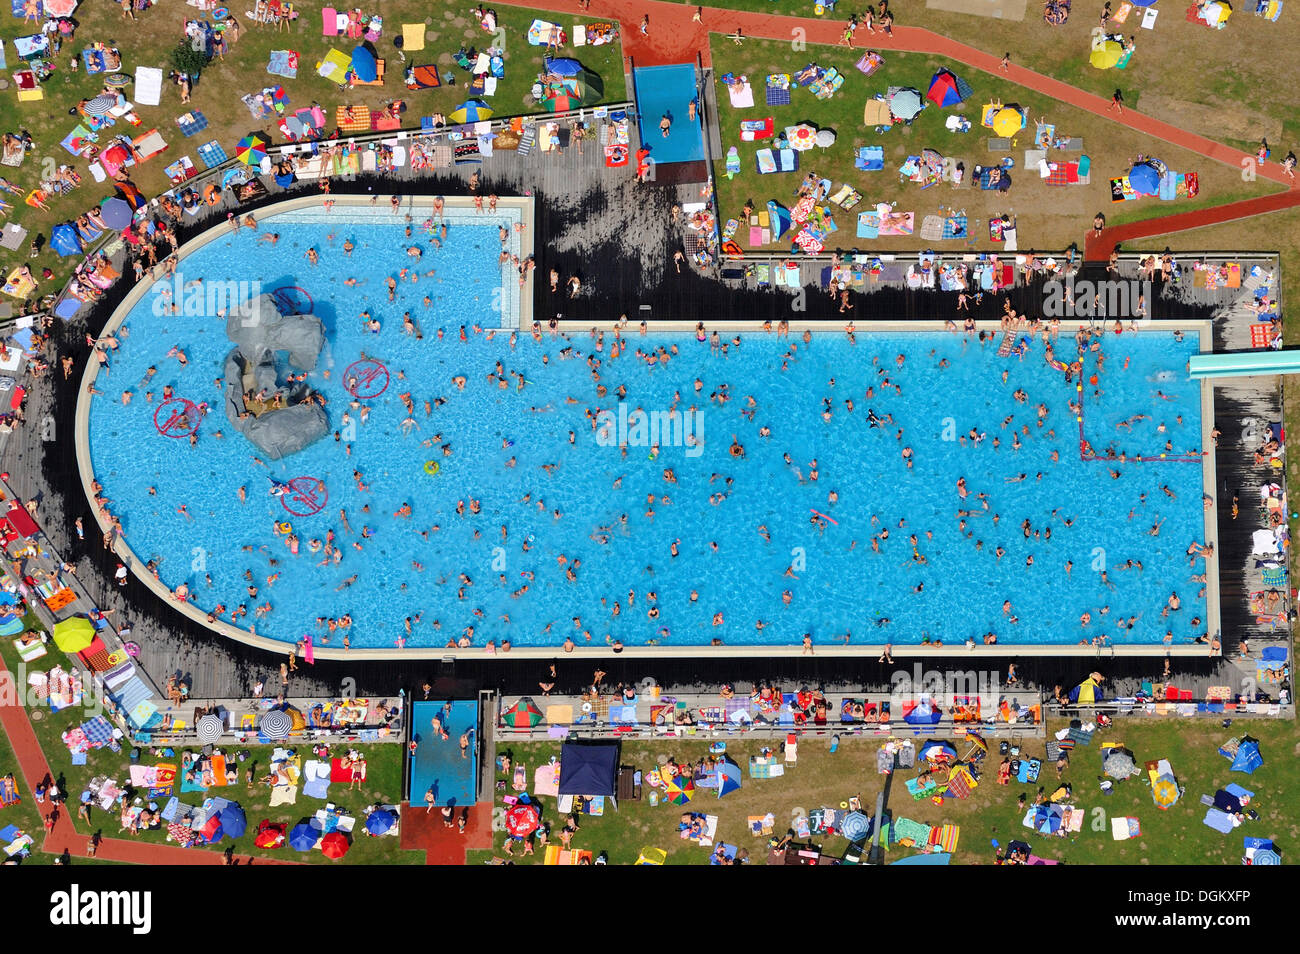 Geesthacht Schwimmbad germany pool outside stockfotos germany pool outside bilder alamy